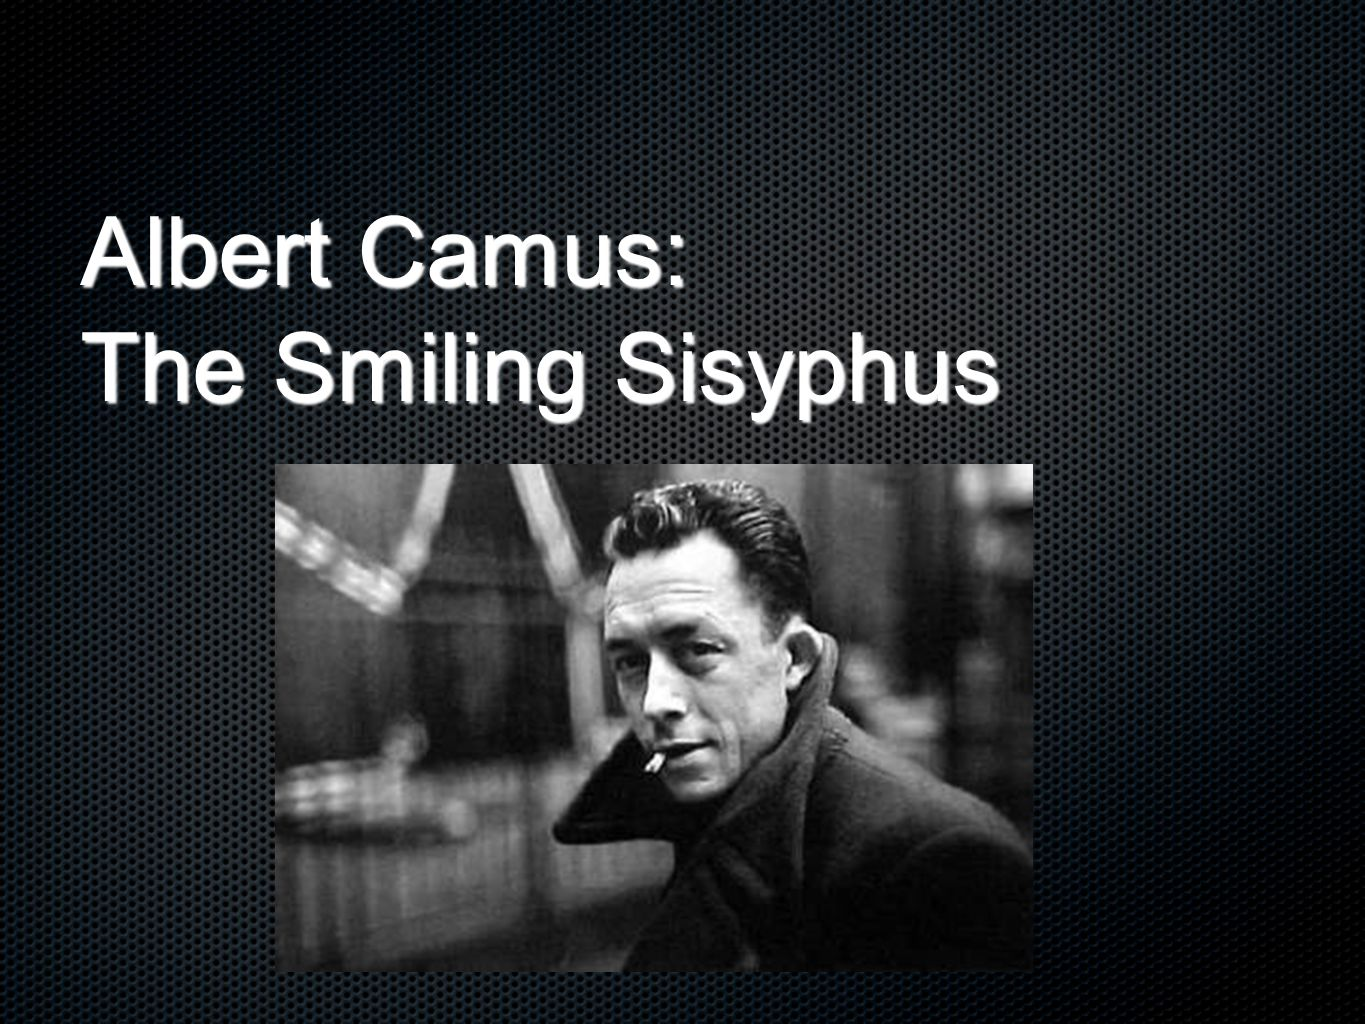 Albert Camus: The Smiling Sisyphus